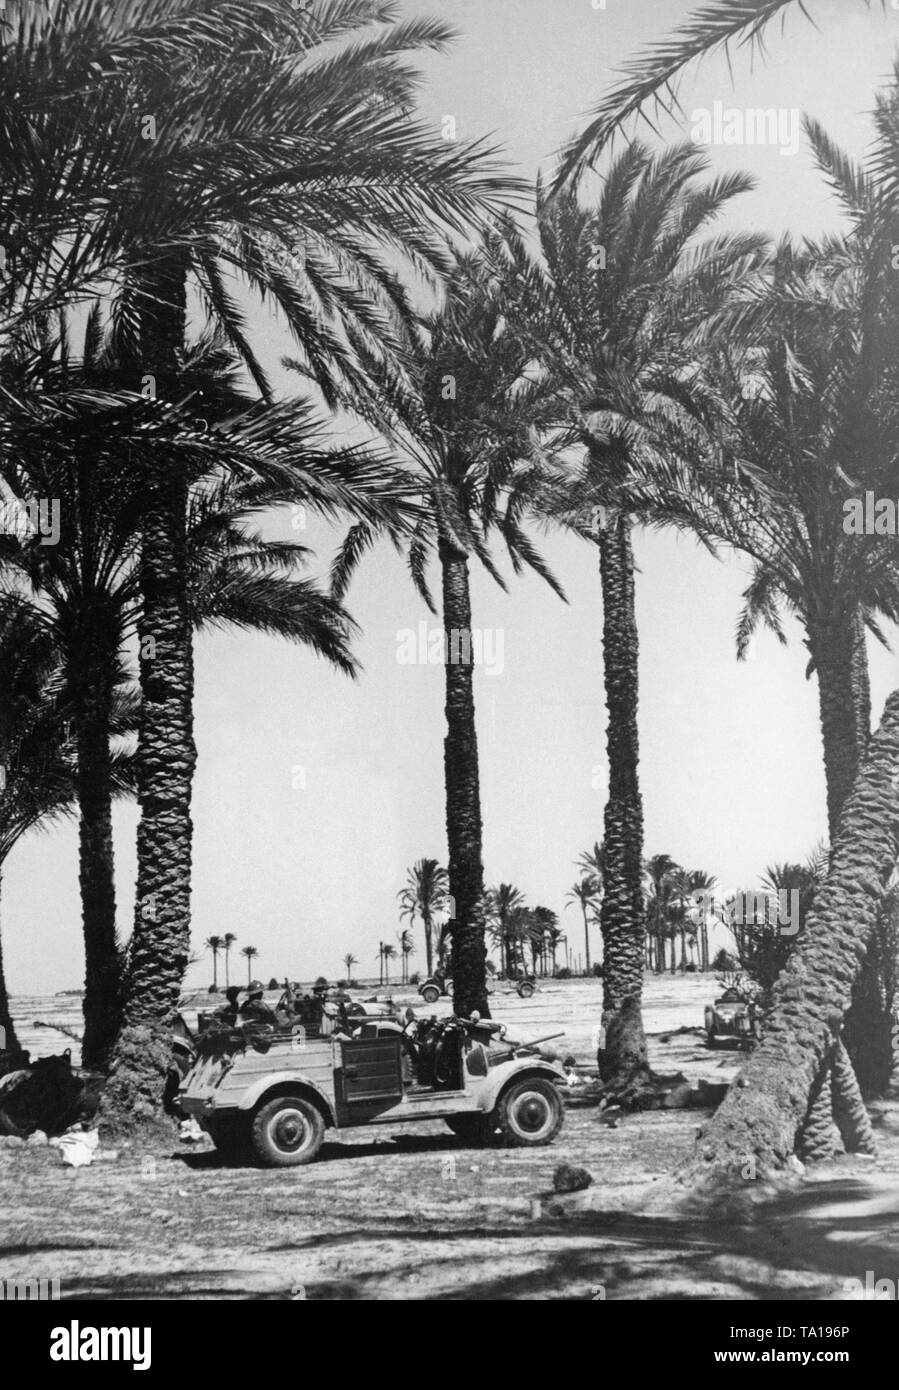 A VW Kuebelwagen of the German Wehrmacht parked between palm trees in Benghazi in Libya. - Stock Image